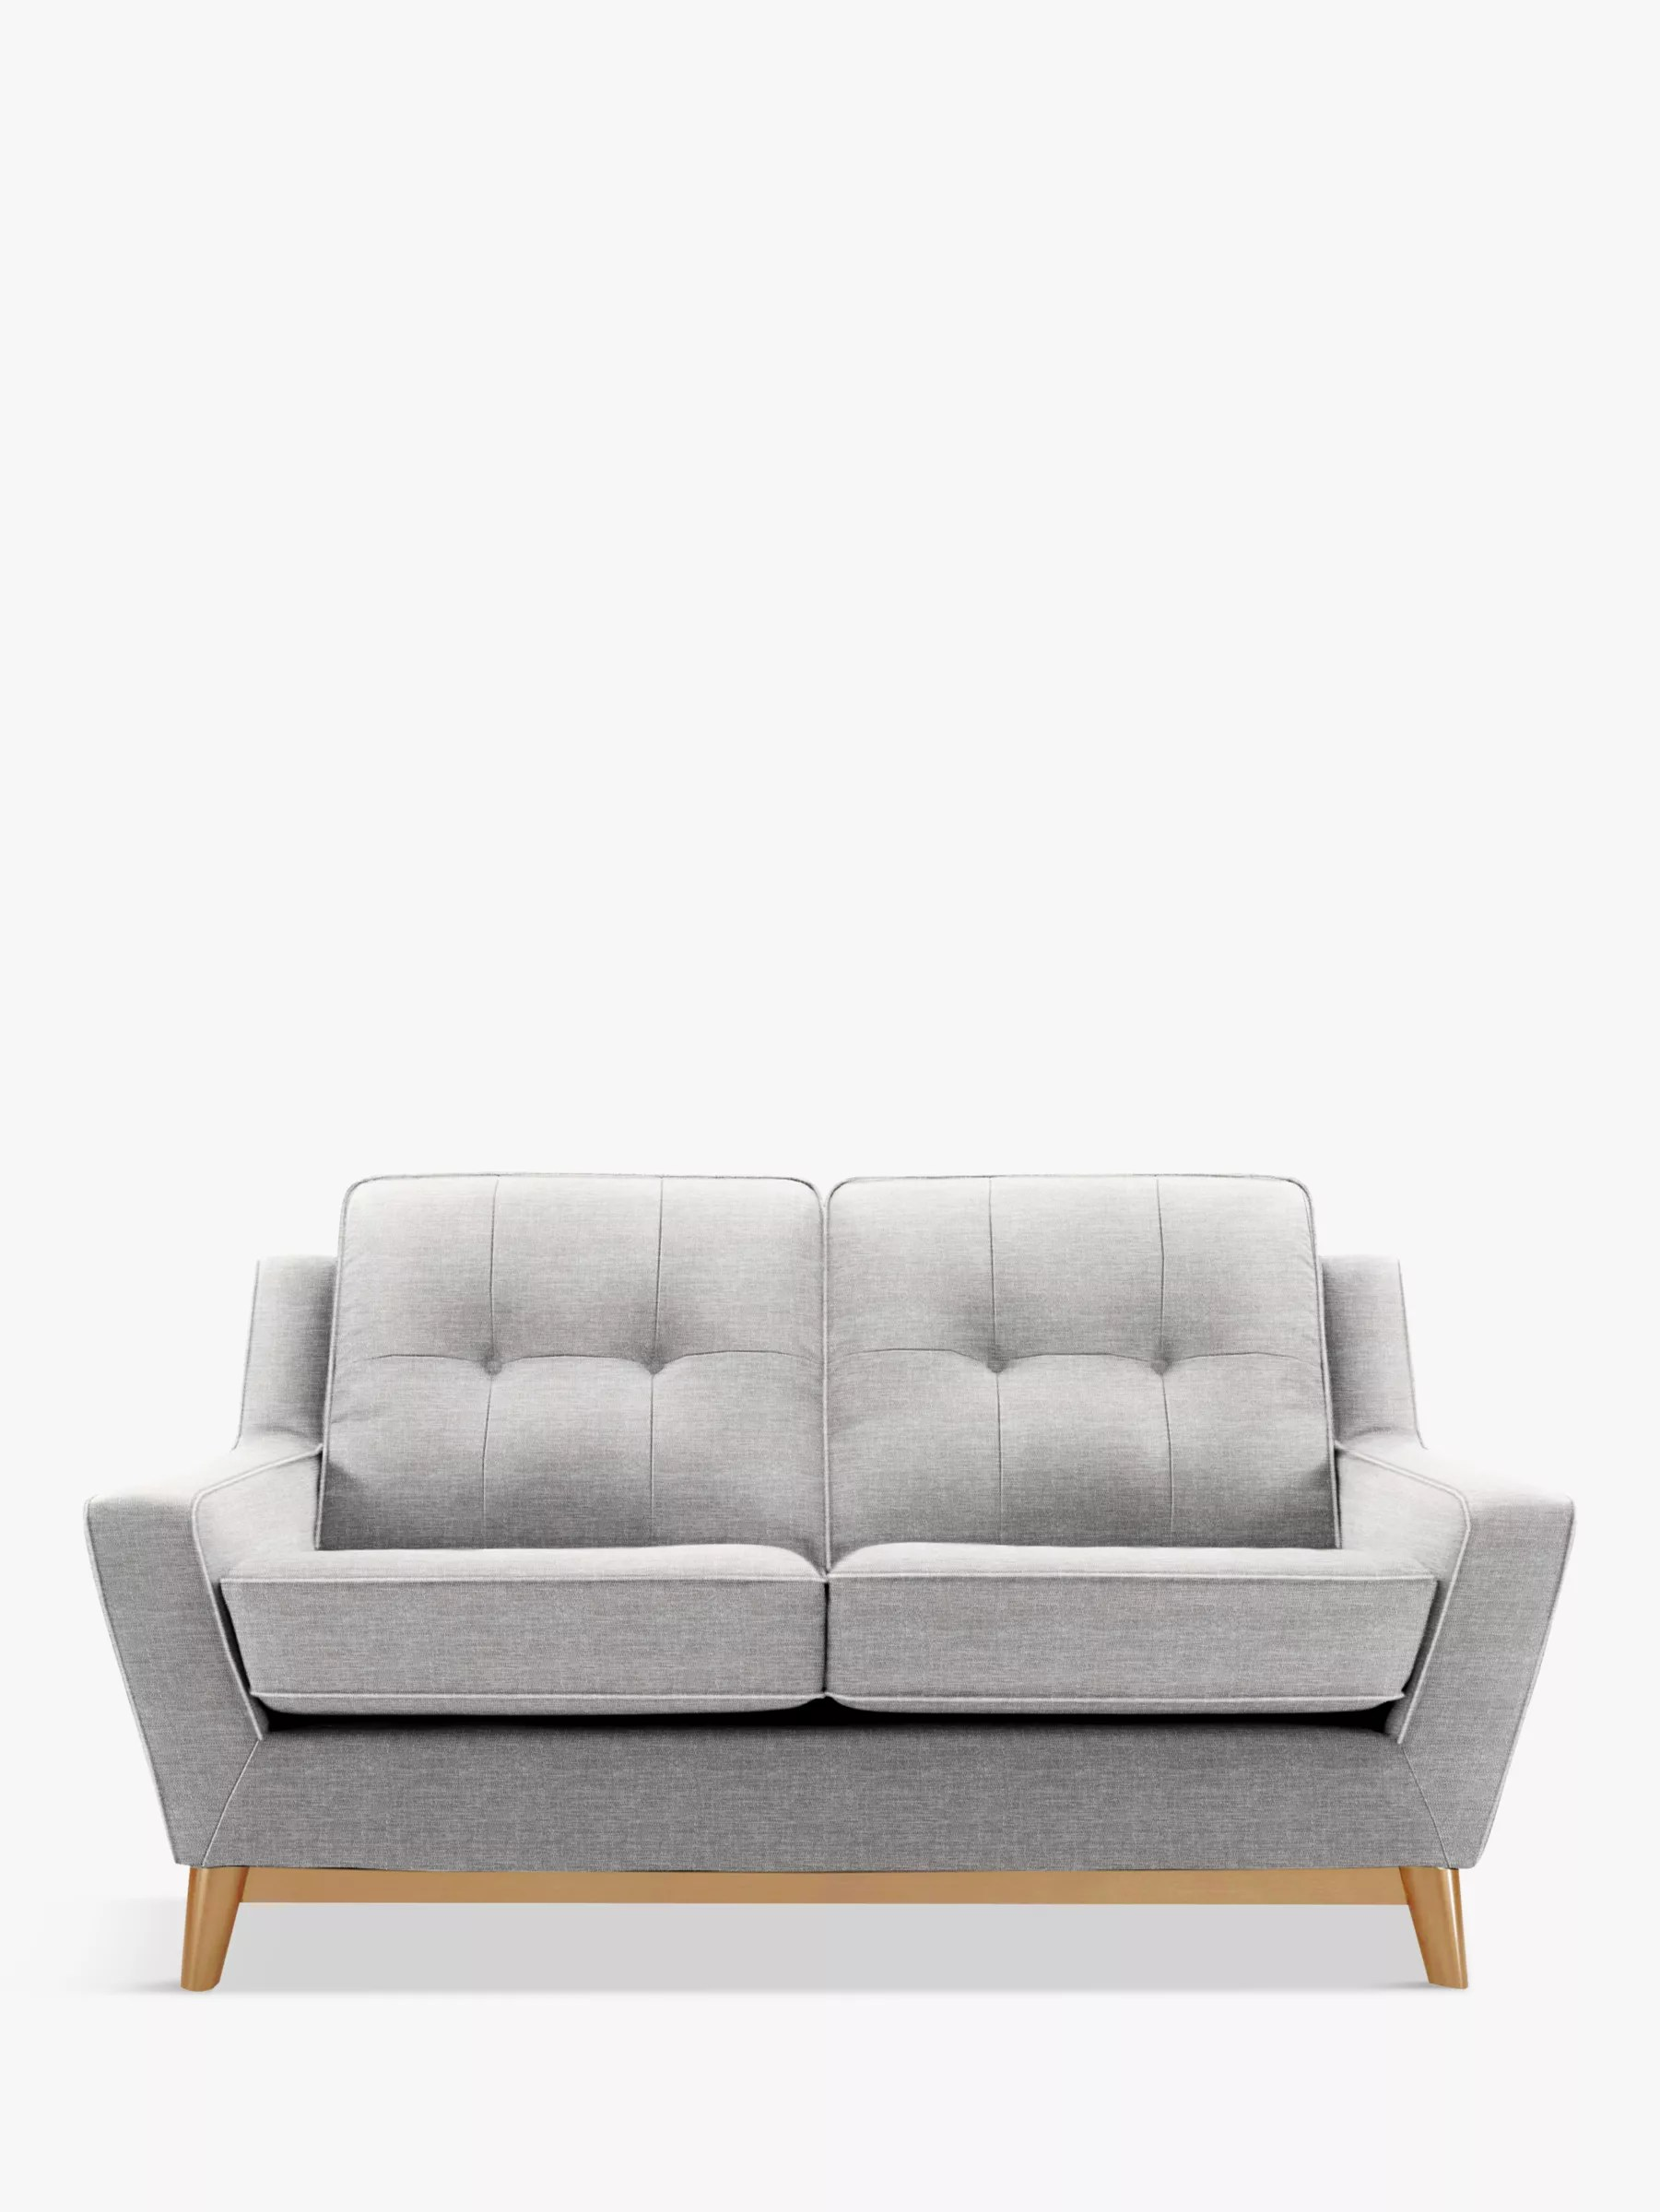 Bettsofa Vintage G Plan Vintage The Fifty Three Small 2 Seater Sofa At John Lewis